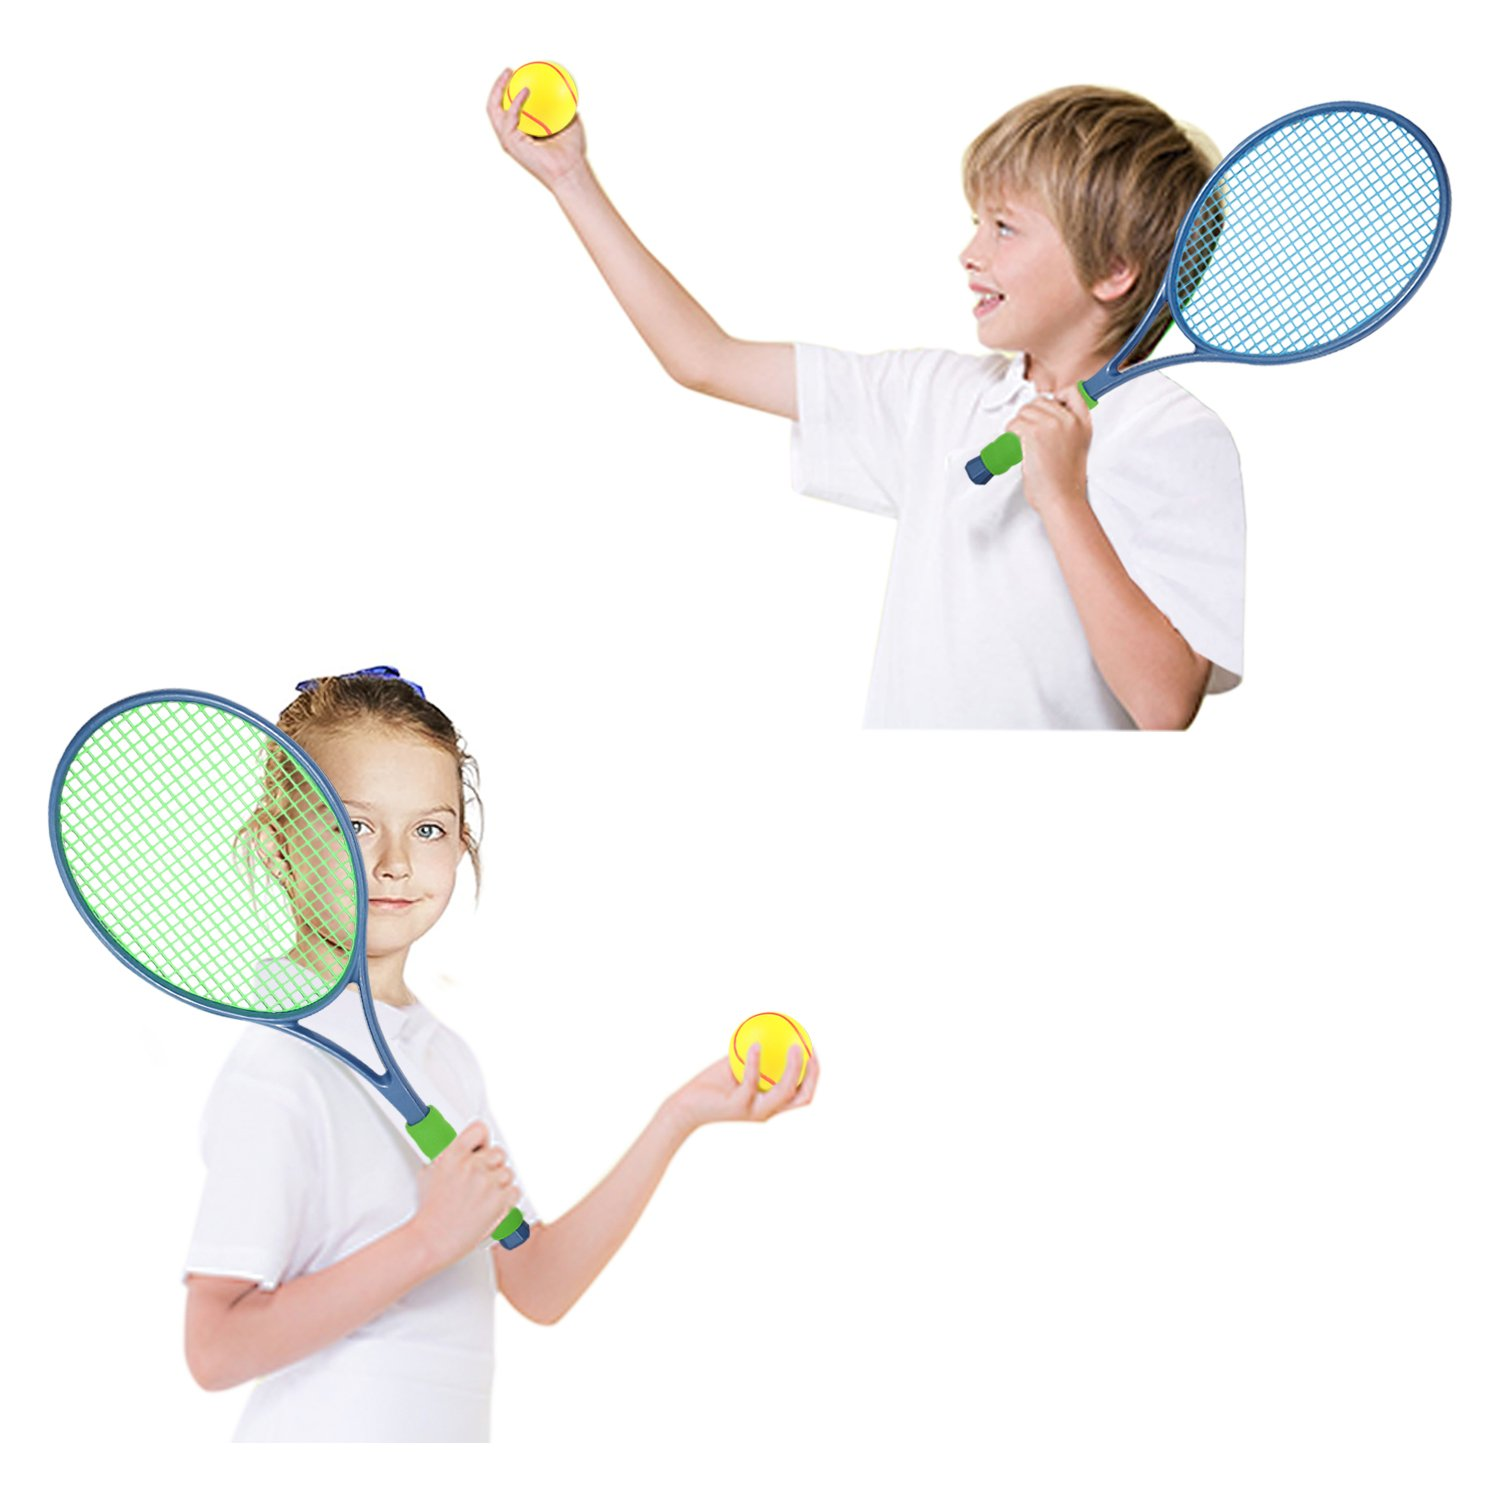 EXERCISE N PLAY Two Piece Tennis Racket Set with Tennis Ball for Kids, Sports Junior Tennis Racquet, Kids Training Tennis Balls